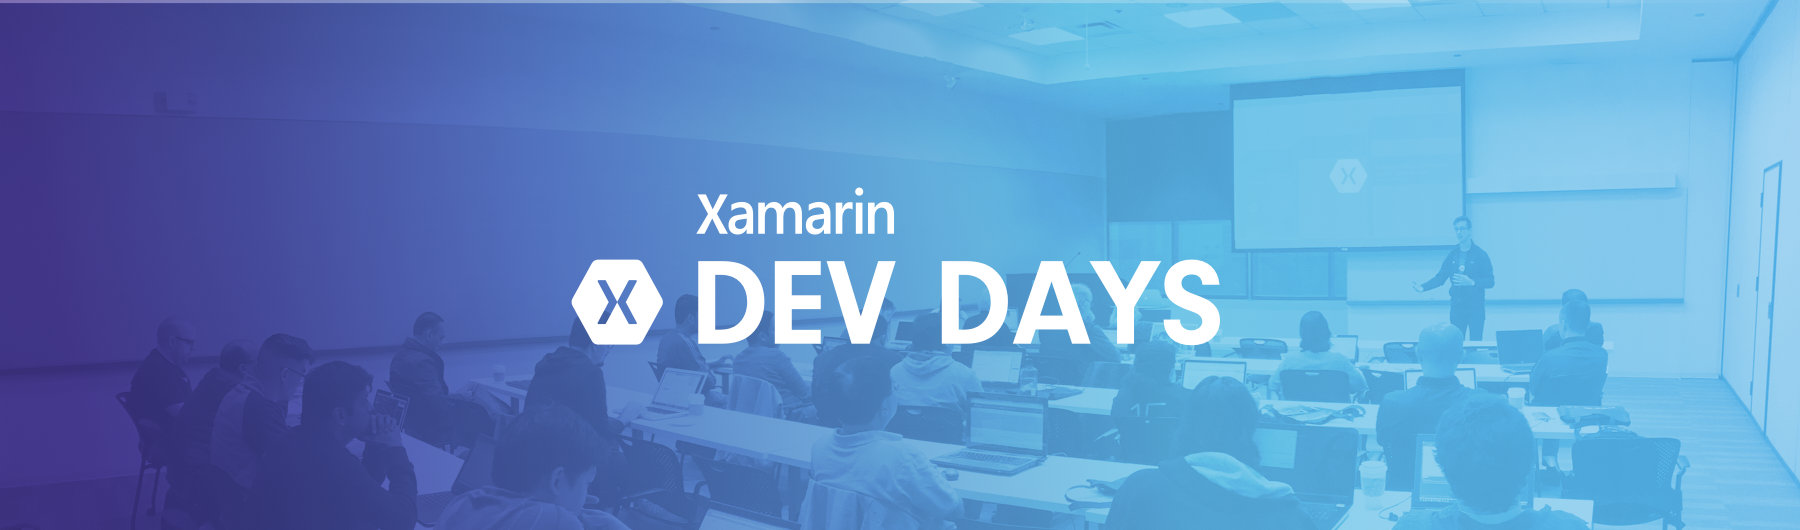 Xamarin Dev Days - Monterrey